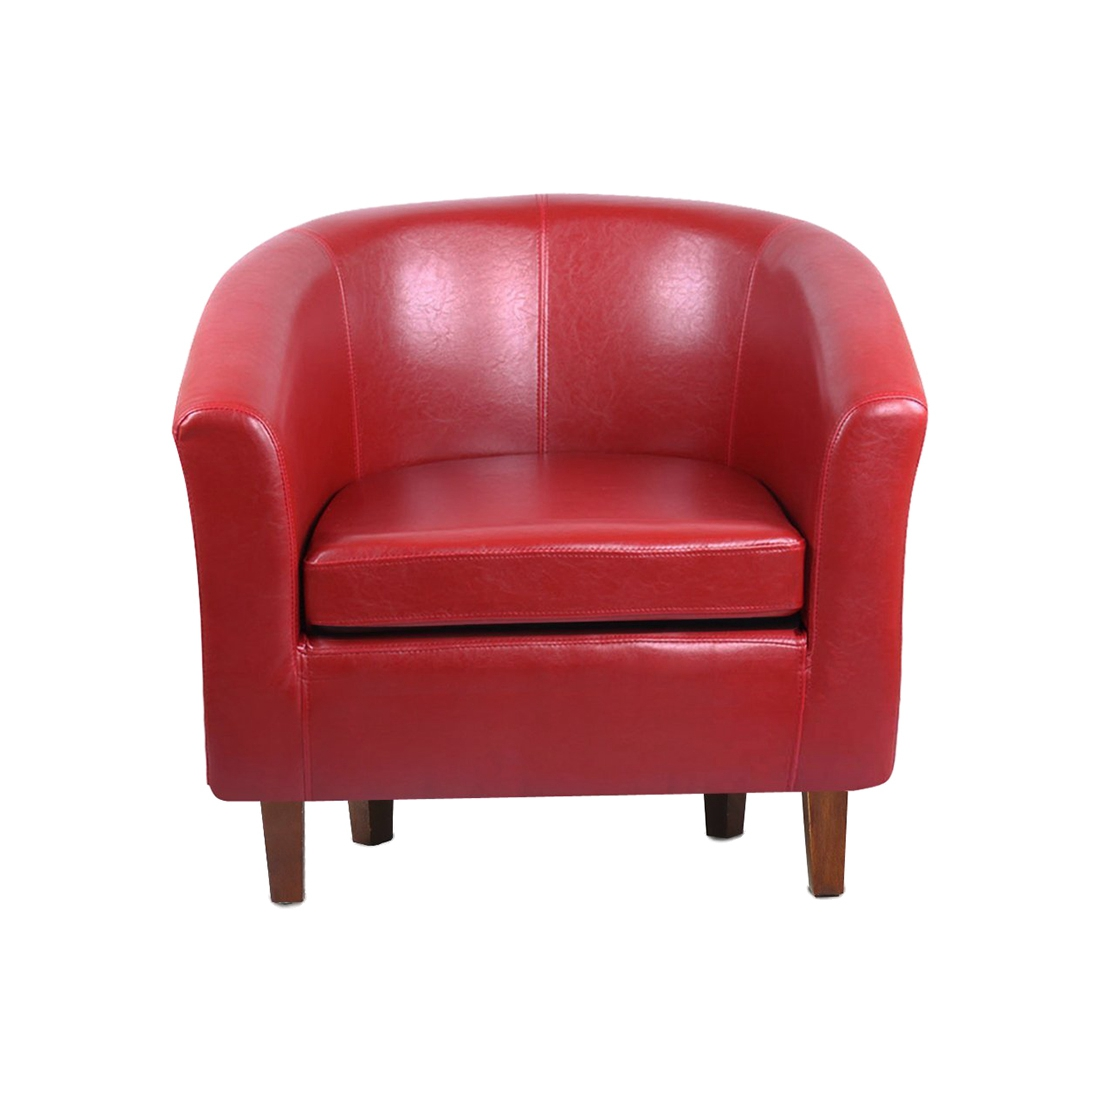 Best Leather Tub Chair Armchair For Dining Living Room Office Reception Red